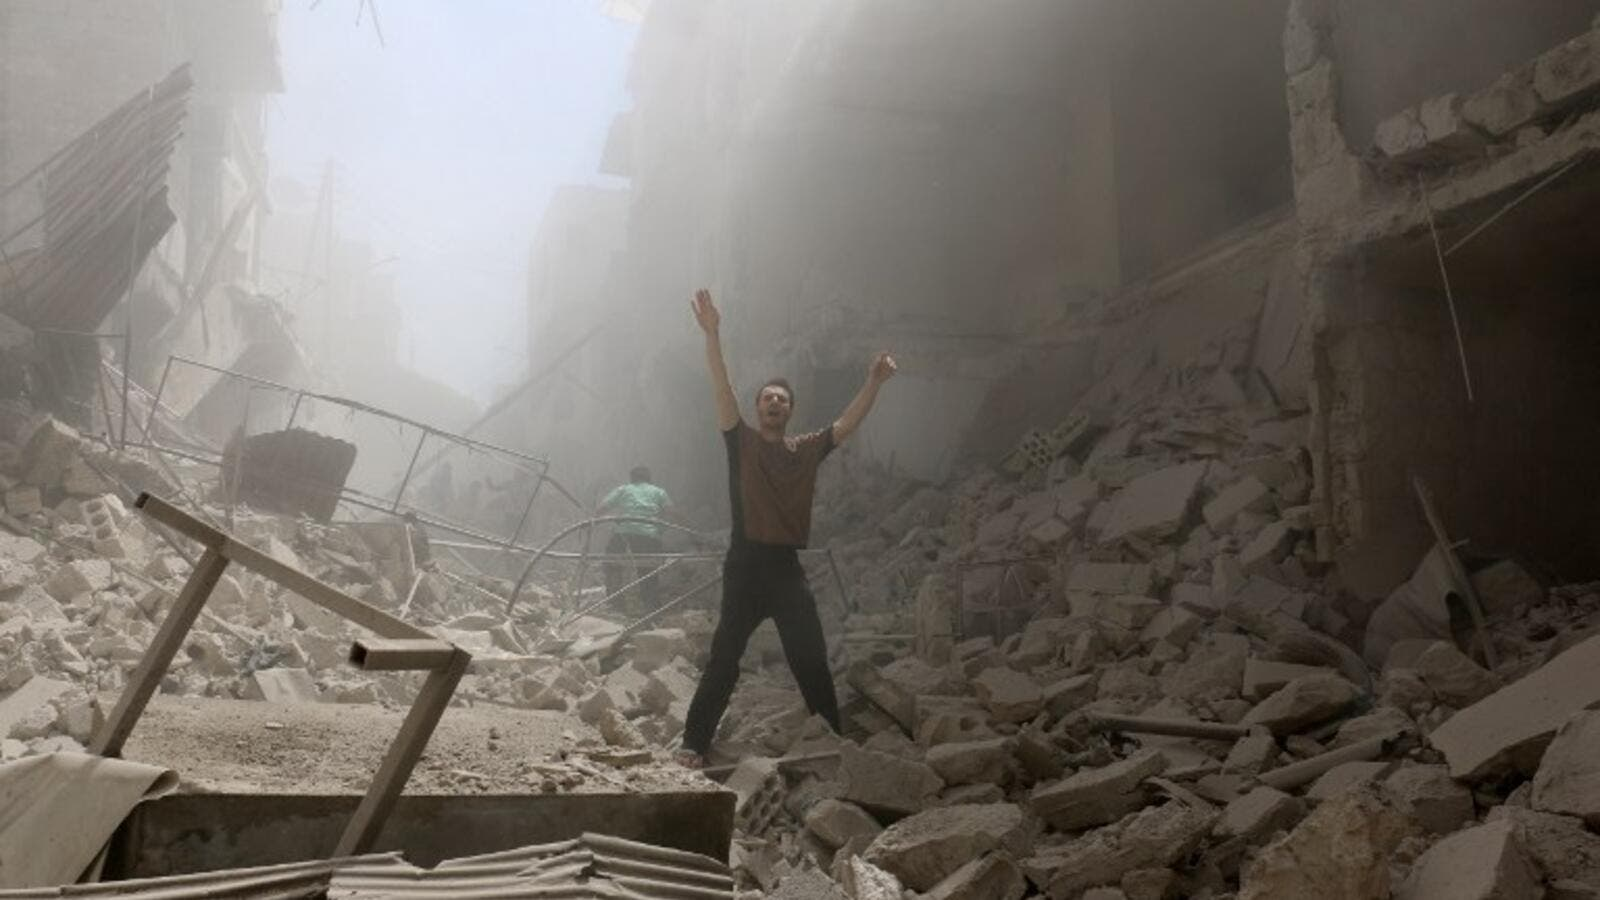 A man gestures while walking through rubble after multiple airstrikes in Aleppo today. (AFP/Amee Alhalbi)